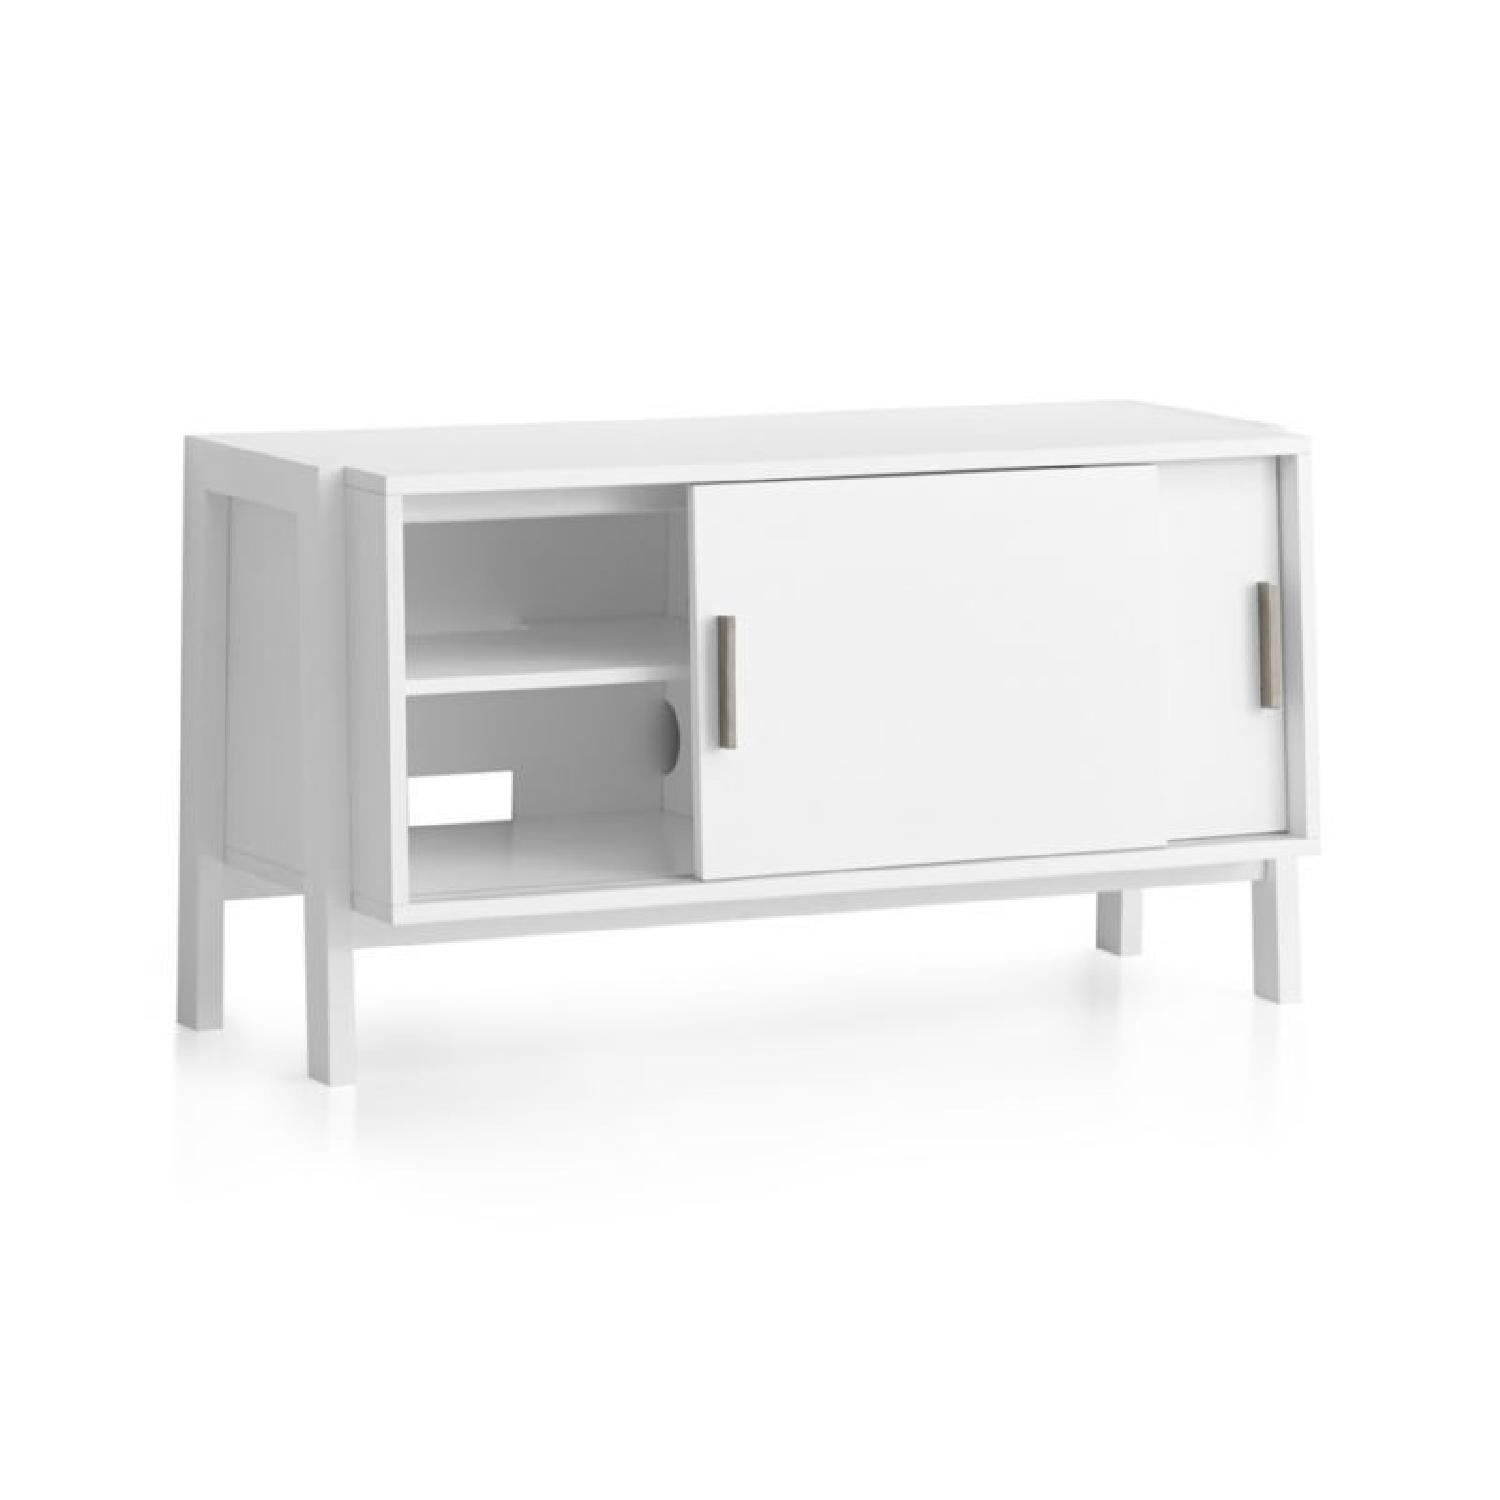 Crate & Barrel Sawyer Low White Media Stand-5